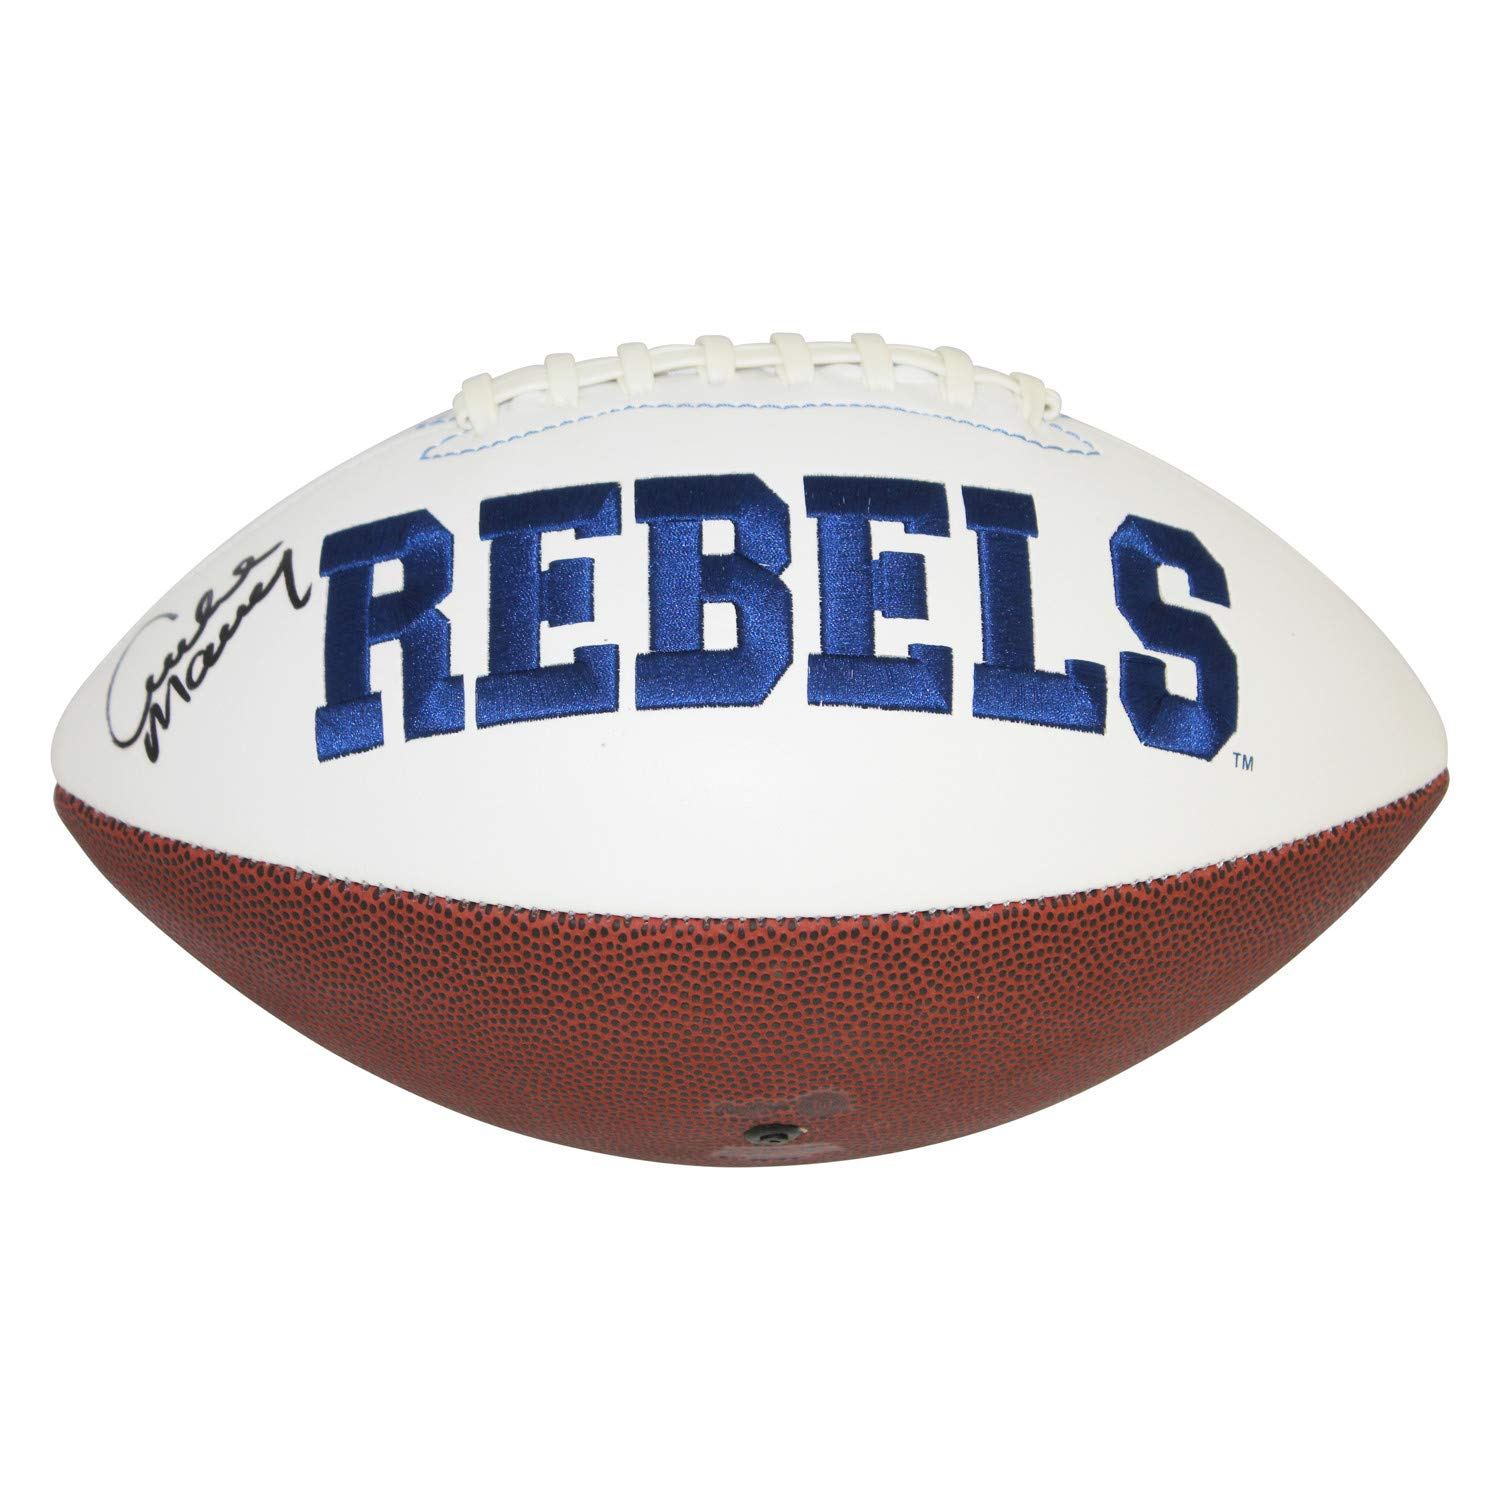 Archie Manning Ole Miss Rebels Autographed Signed White Panel Logo Football - JSA Authentic - Rebels Side Auto